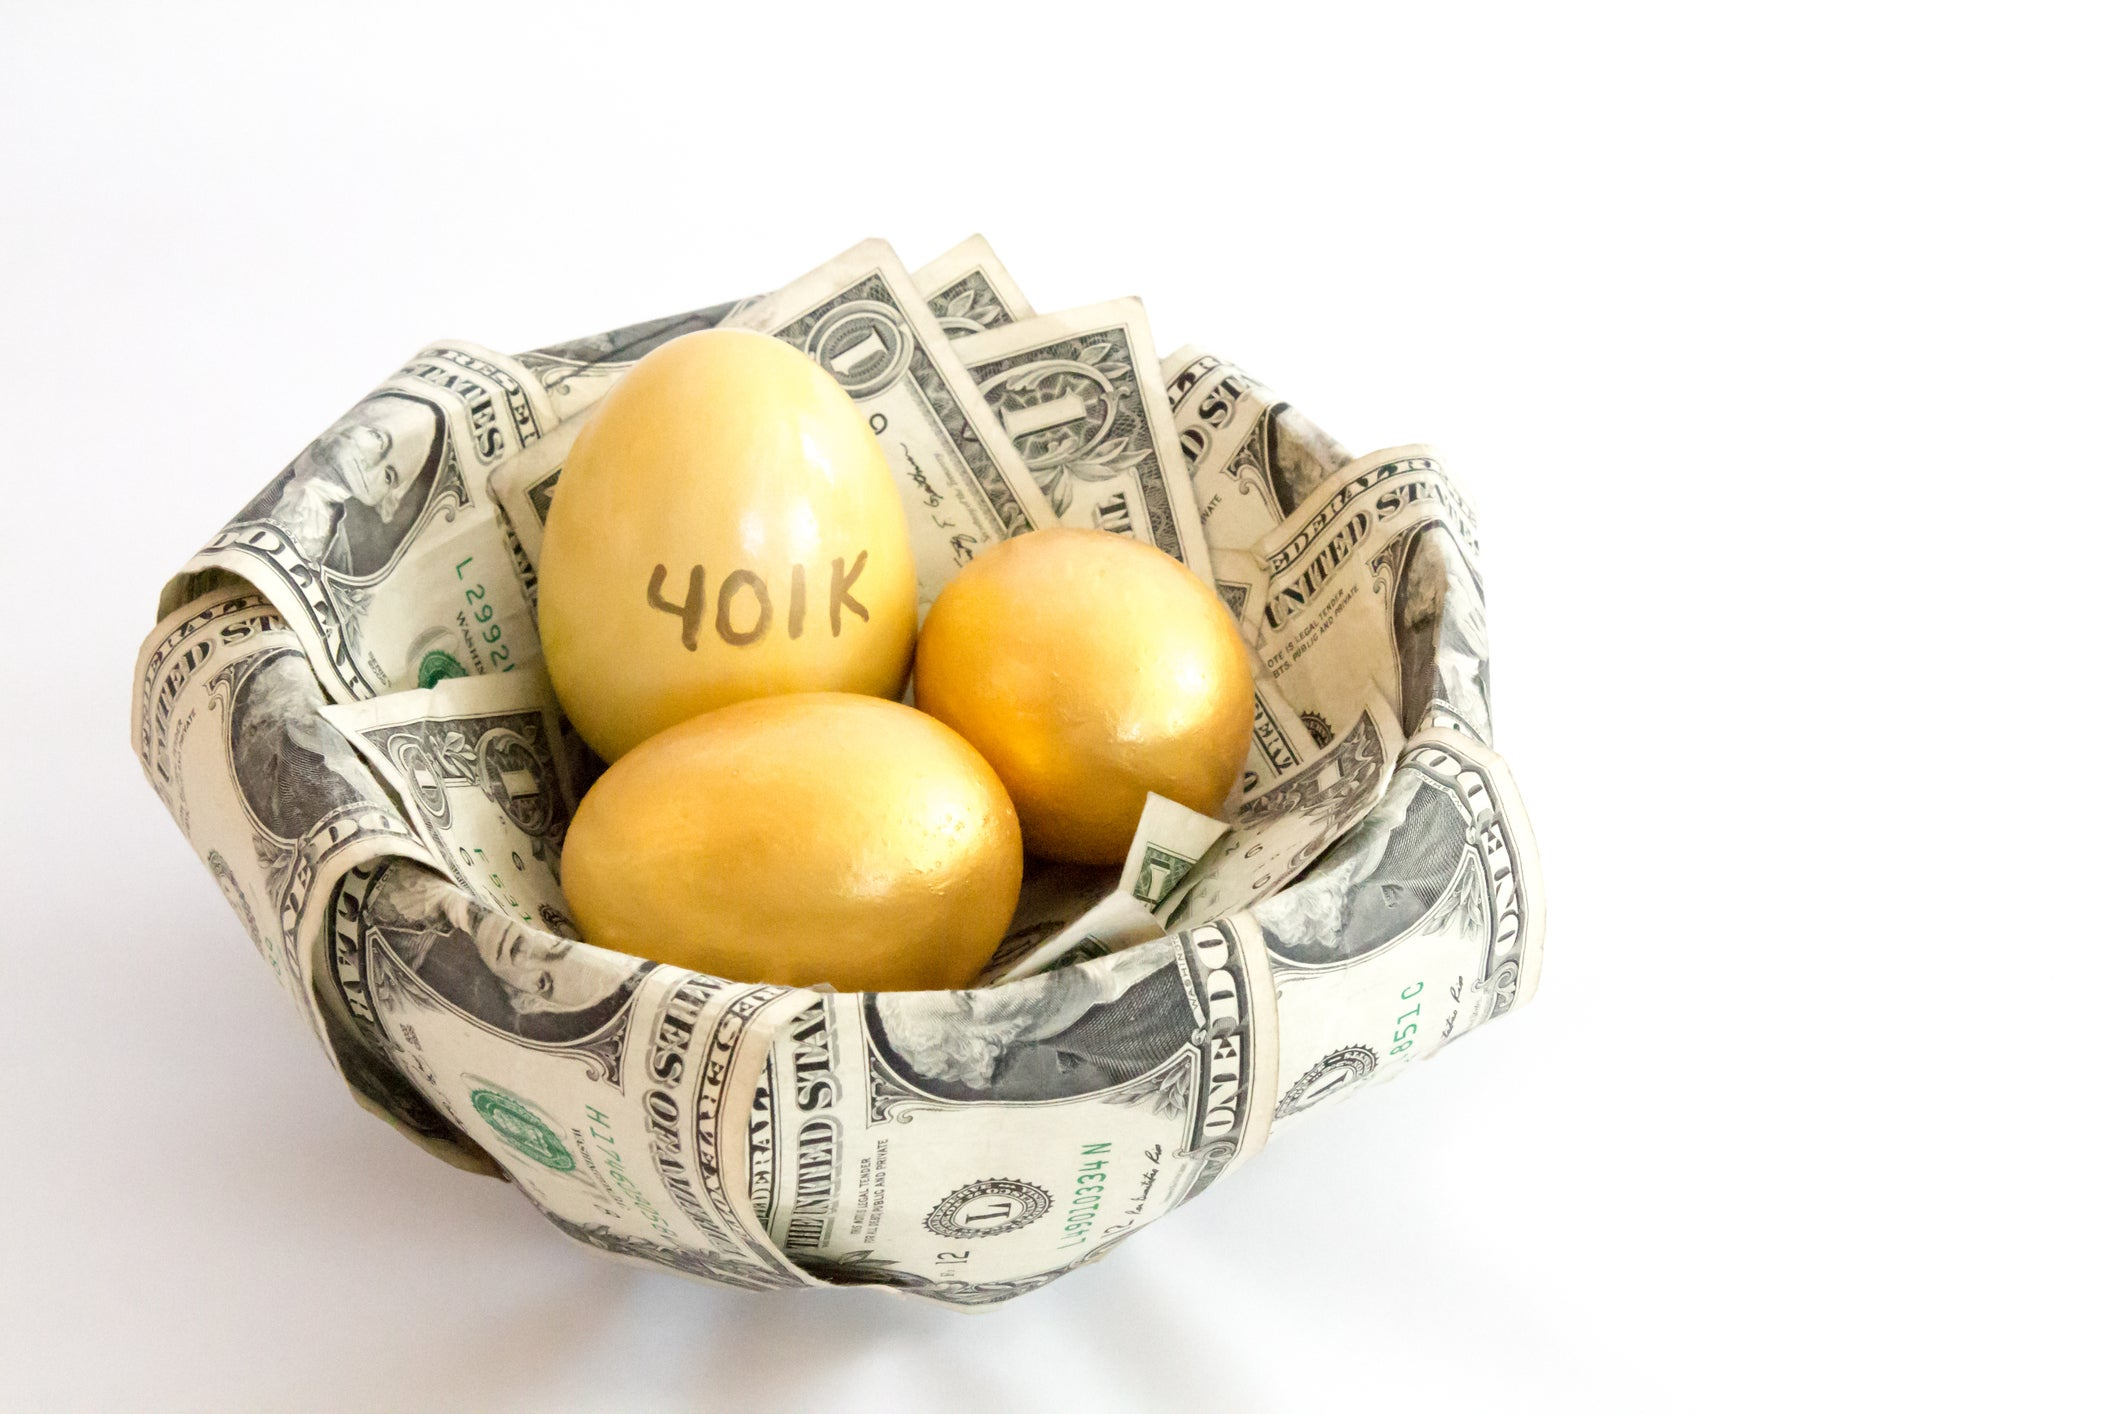 Can I Get Money From My 401(k) at 55? | The Motley Fool